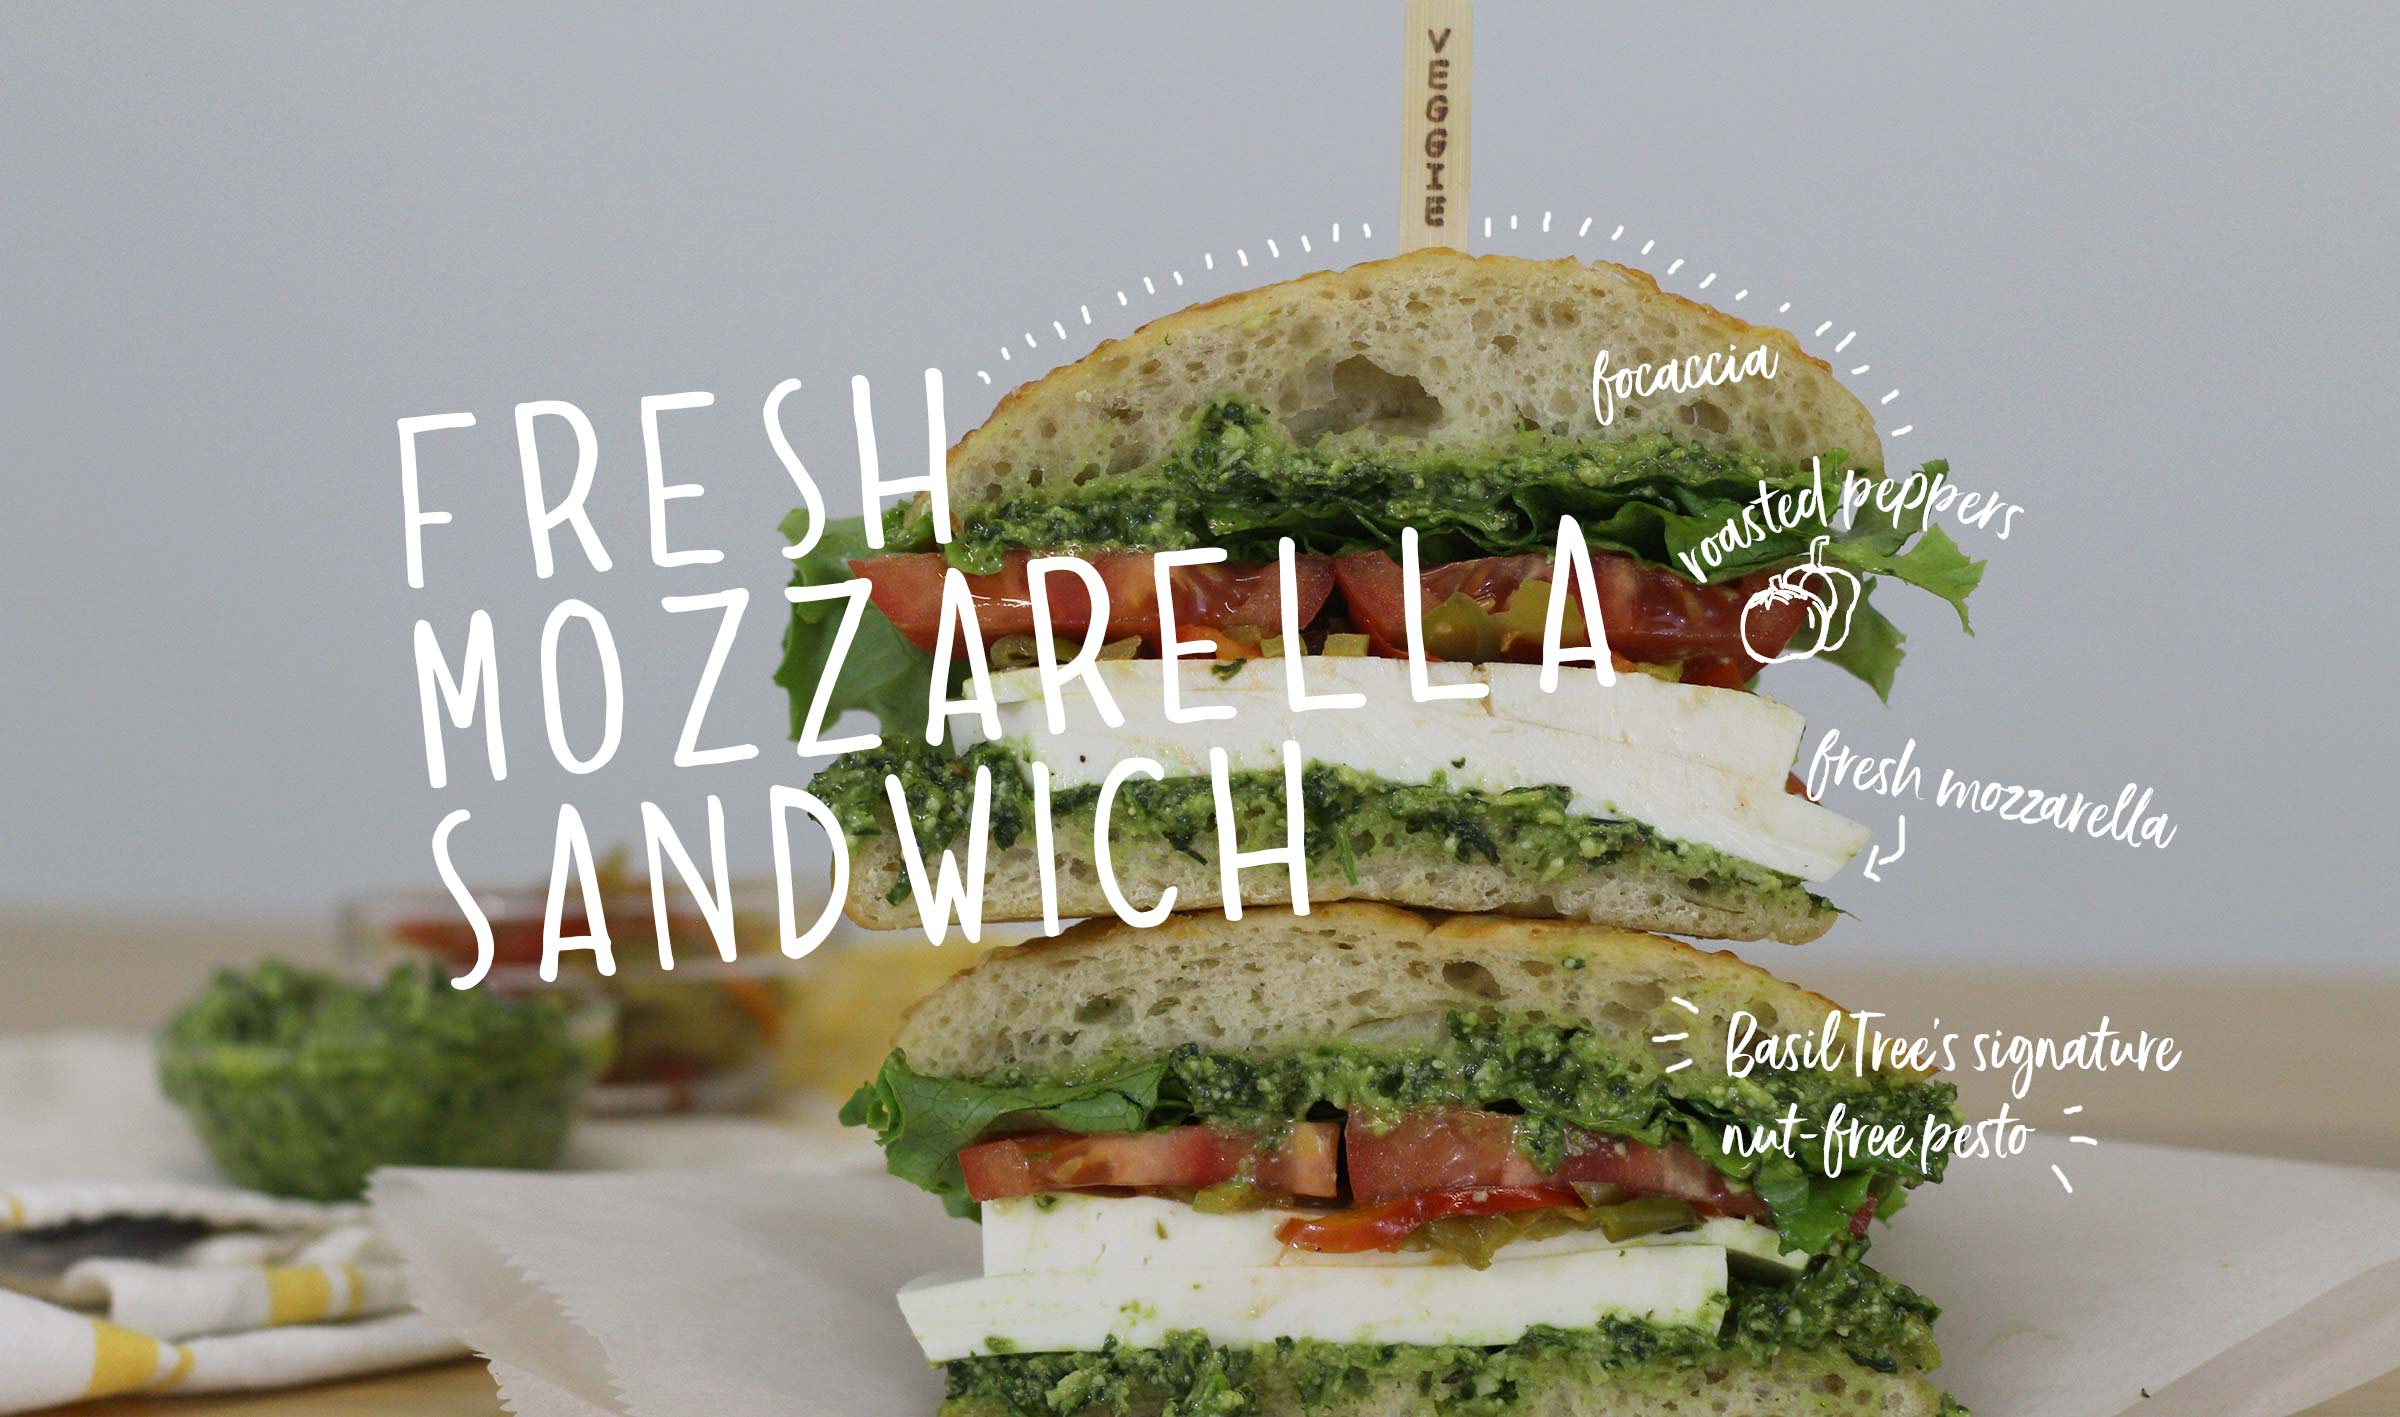 Fresh Mozzarella sandwich with nut-free pesto made in-house